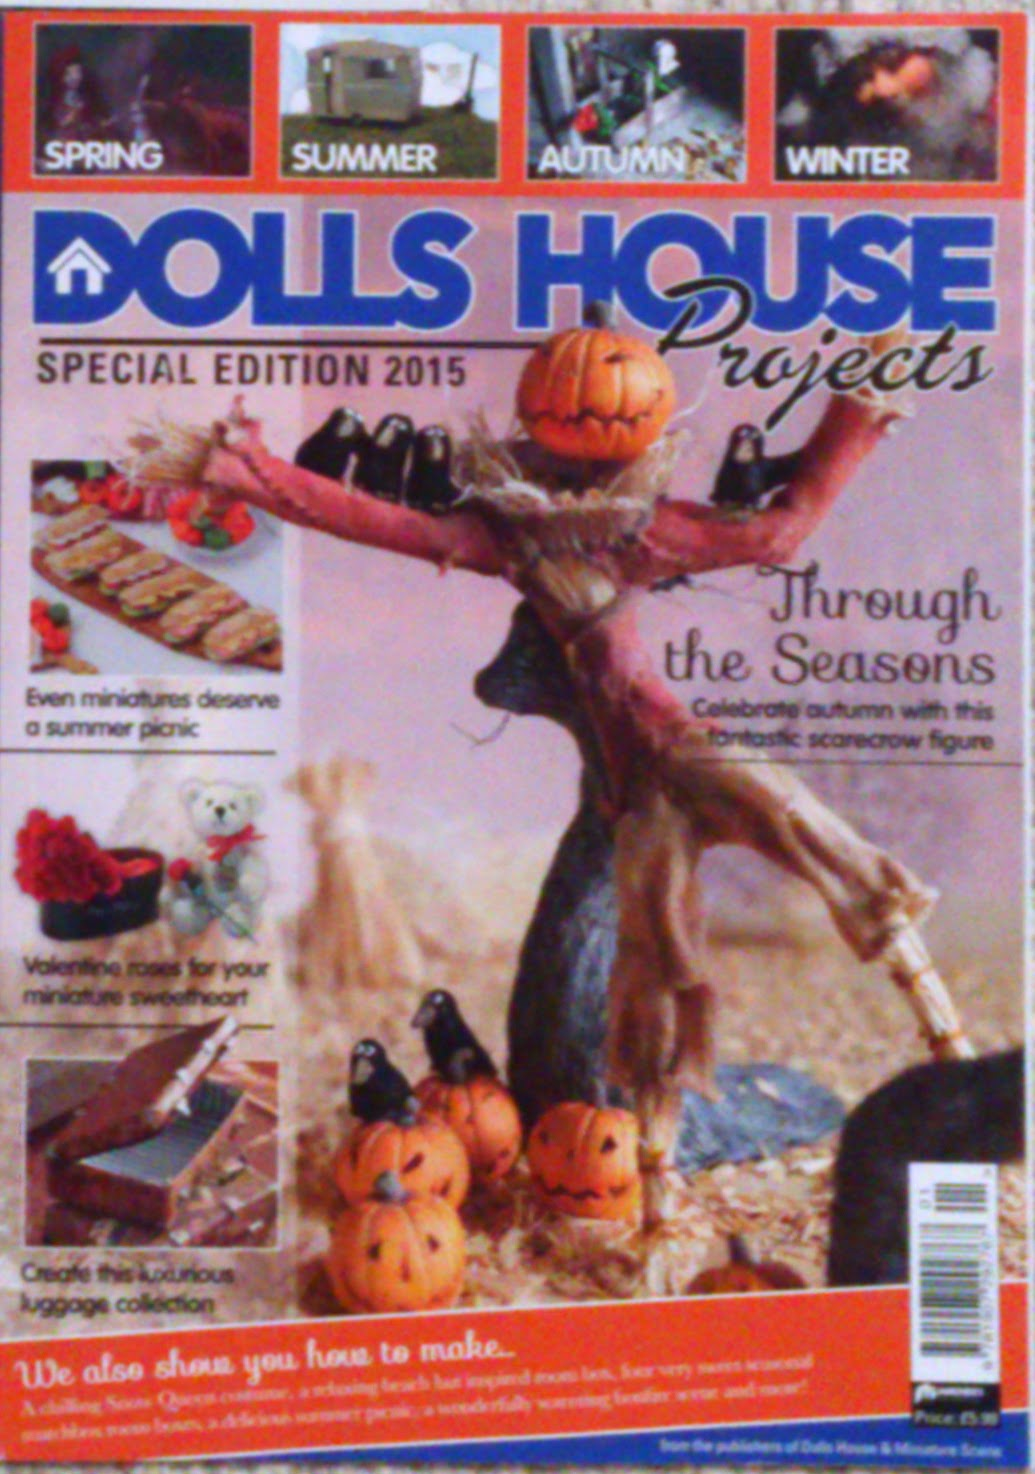 Dolls House Projects - Special Edition 2015